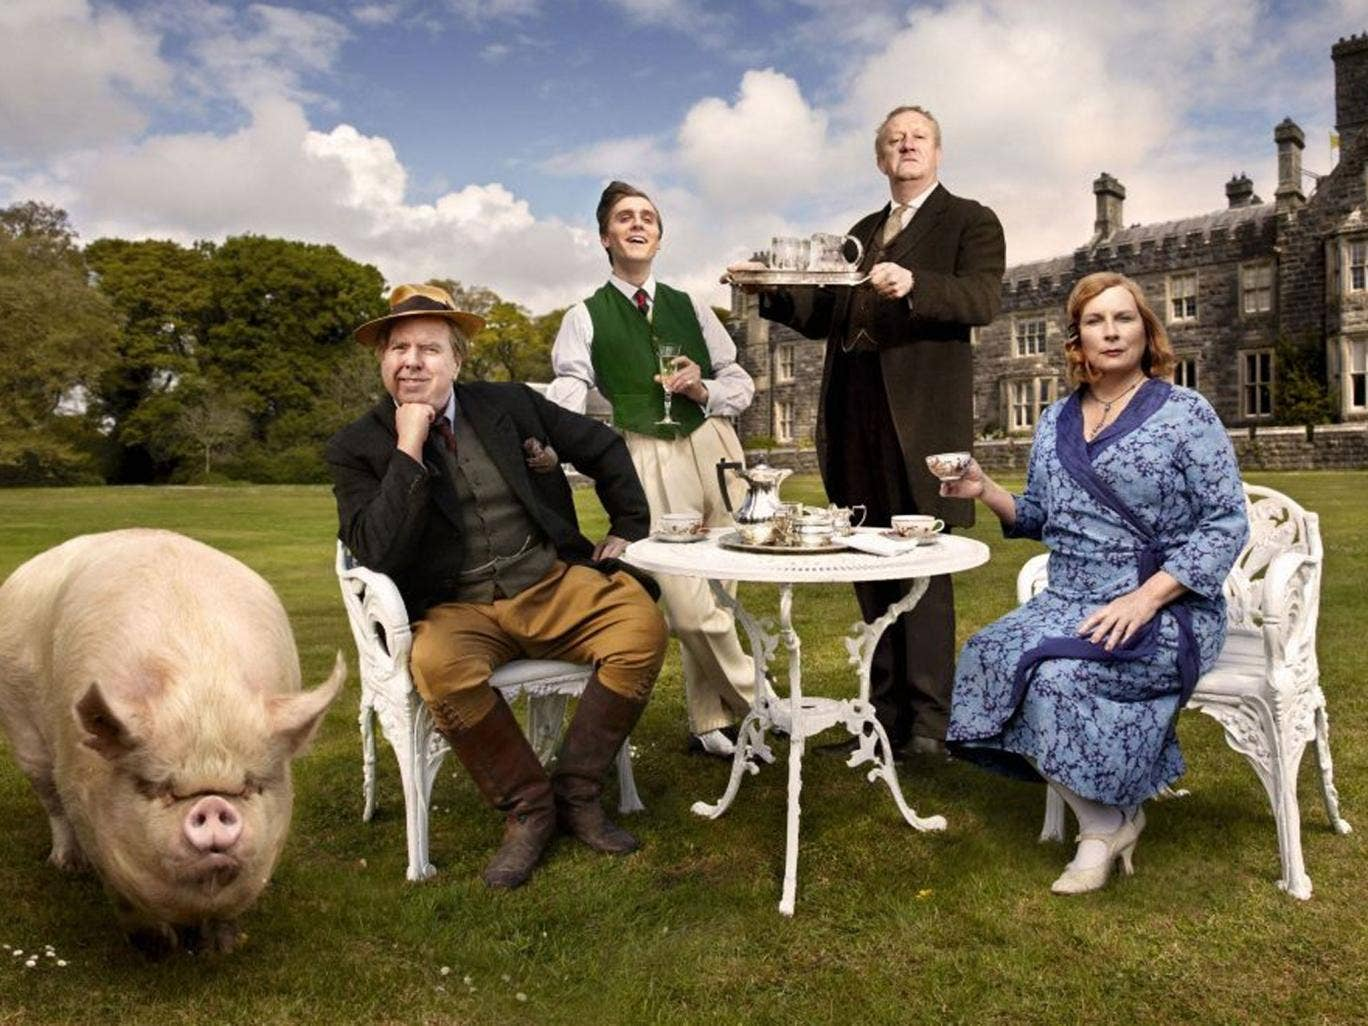 Timothy Spall, Jack Farthing, Mark Williams and Jennifer Saunders in 'Blandings'